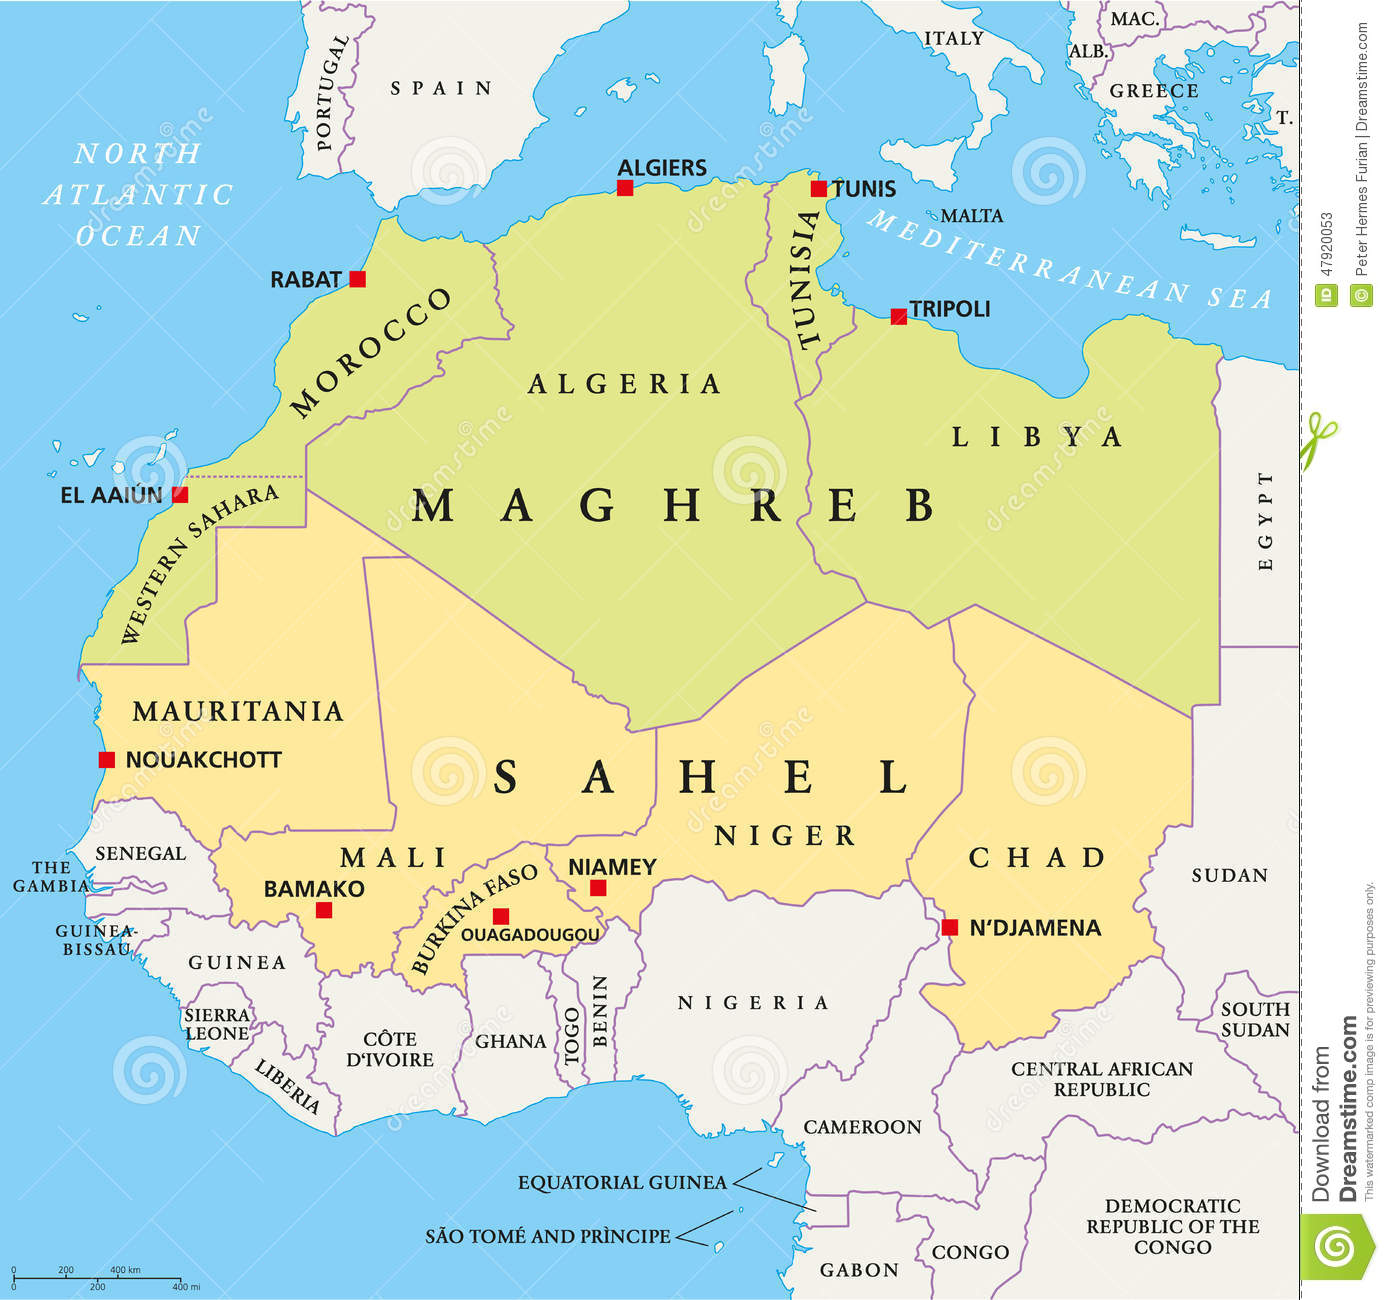 nouakchott map with Photo Stock Carte Politique Du Maghreb Et De Sahel Image47920053 on Africa Oeste likewise New Terminal Opens At Perth Airport furthermore Addis Ababa Bole International Airport as well Mauritania Map Africa besides G5 Sahel.